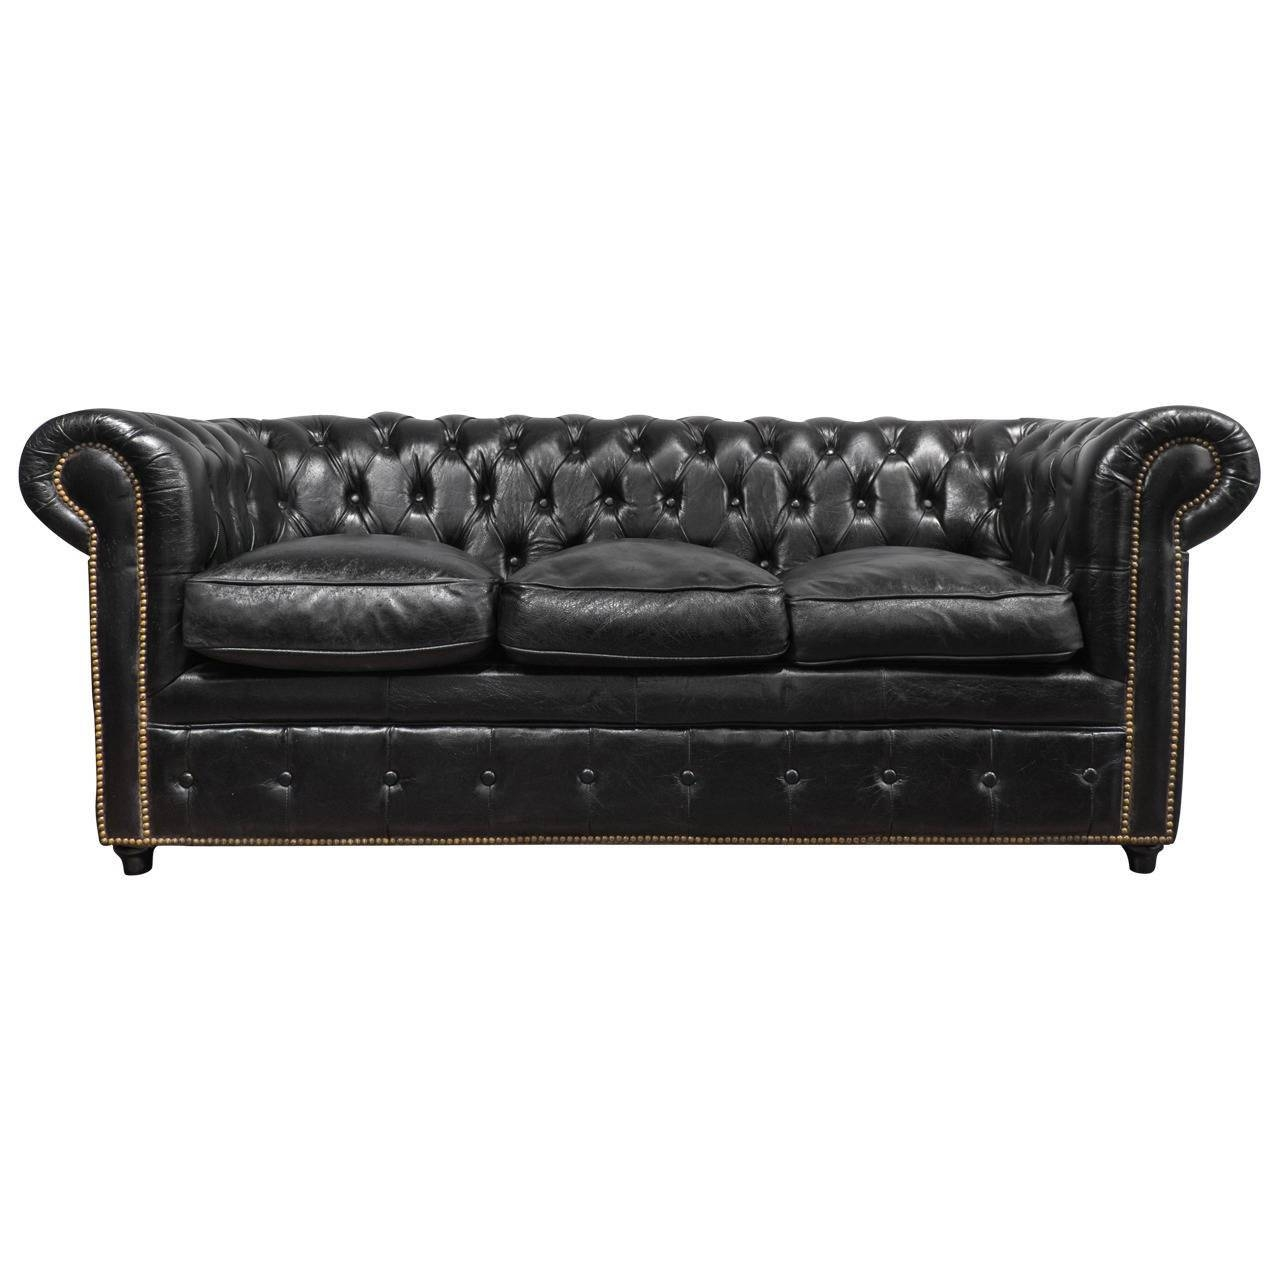 Vintage Black Leather Chesterfield Sofa At 1Stdibs within Chesterfield Black Sofas (Image 27 of 30)